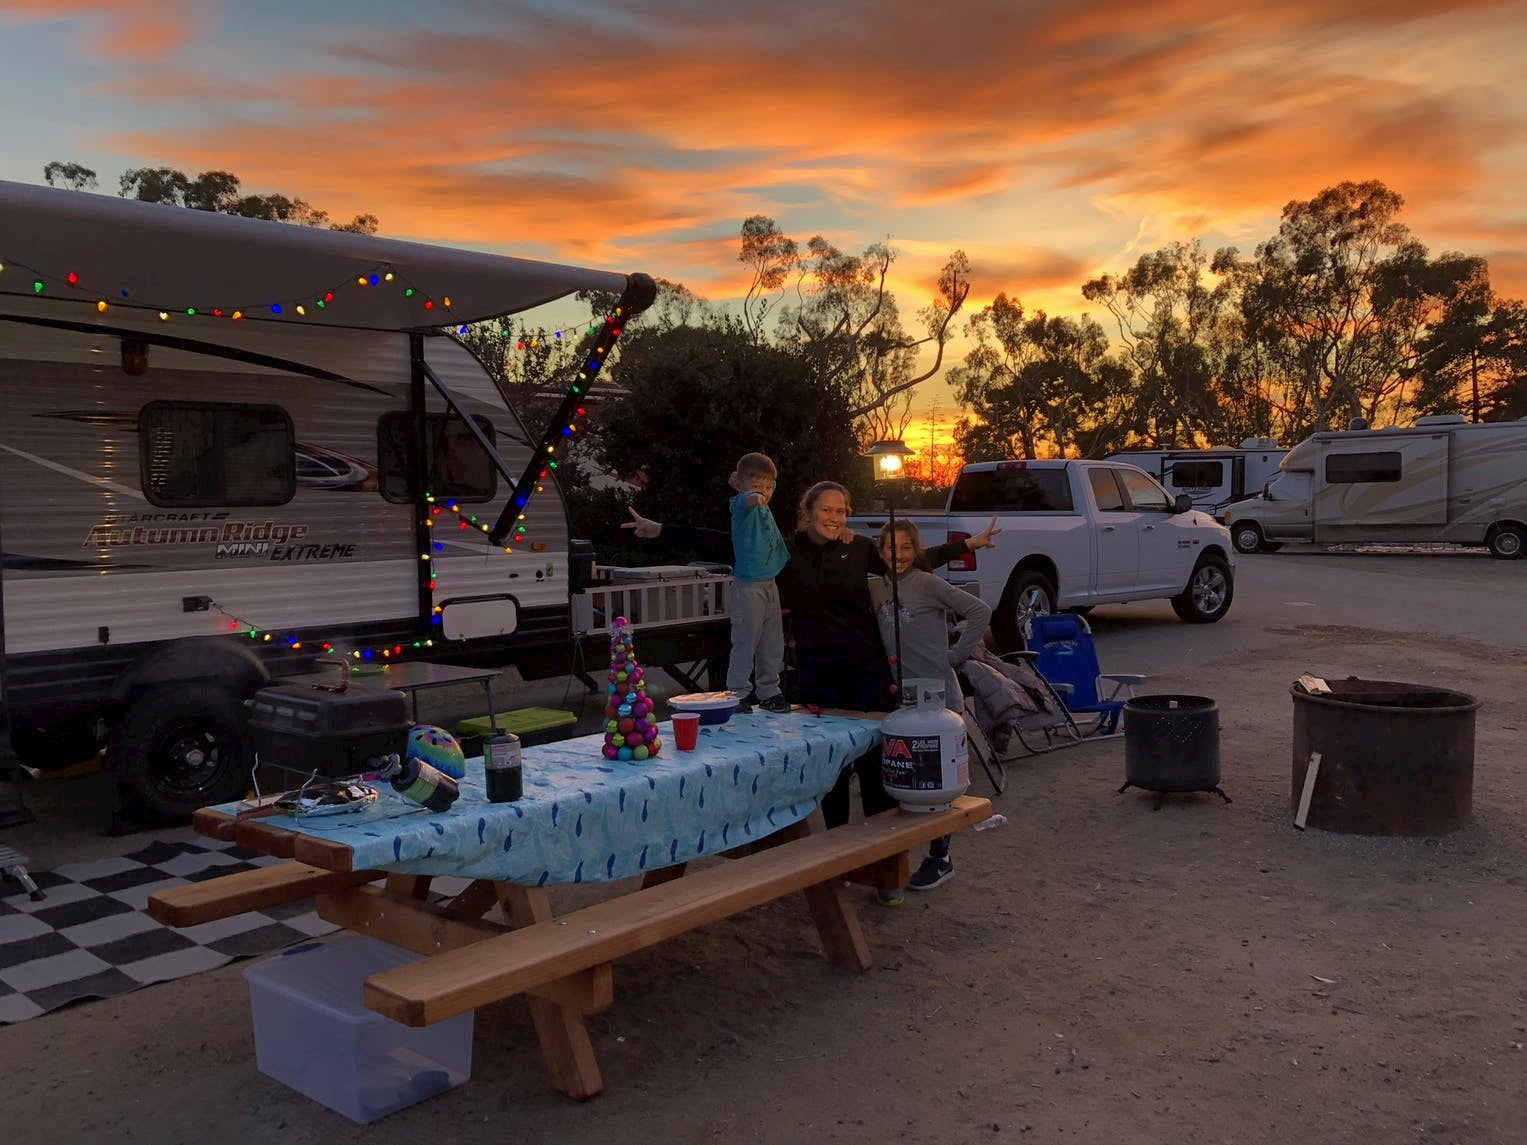 Family posing beside picnic table while the sun sets over RV campground.